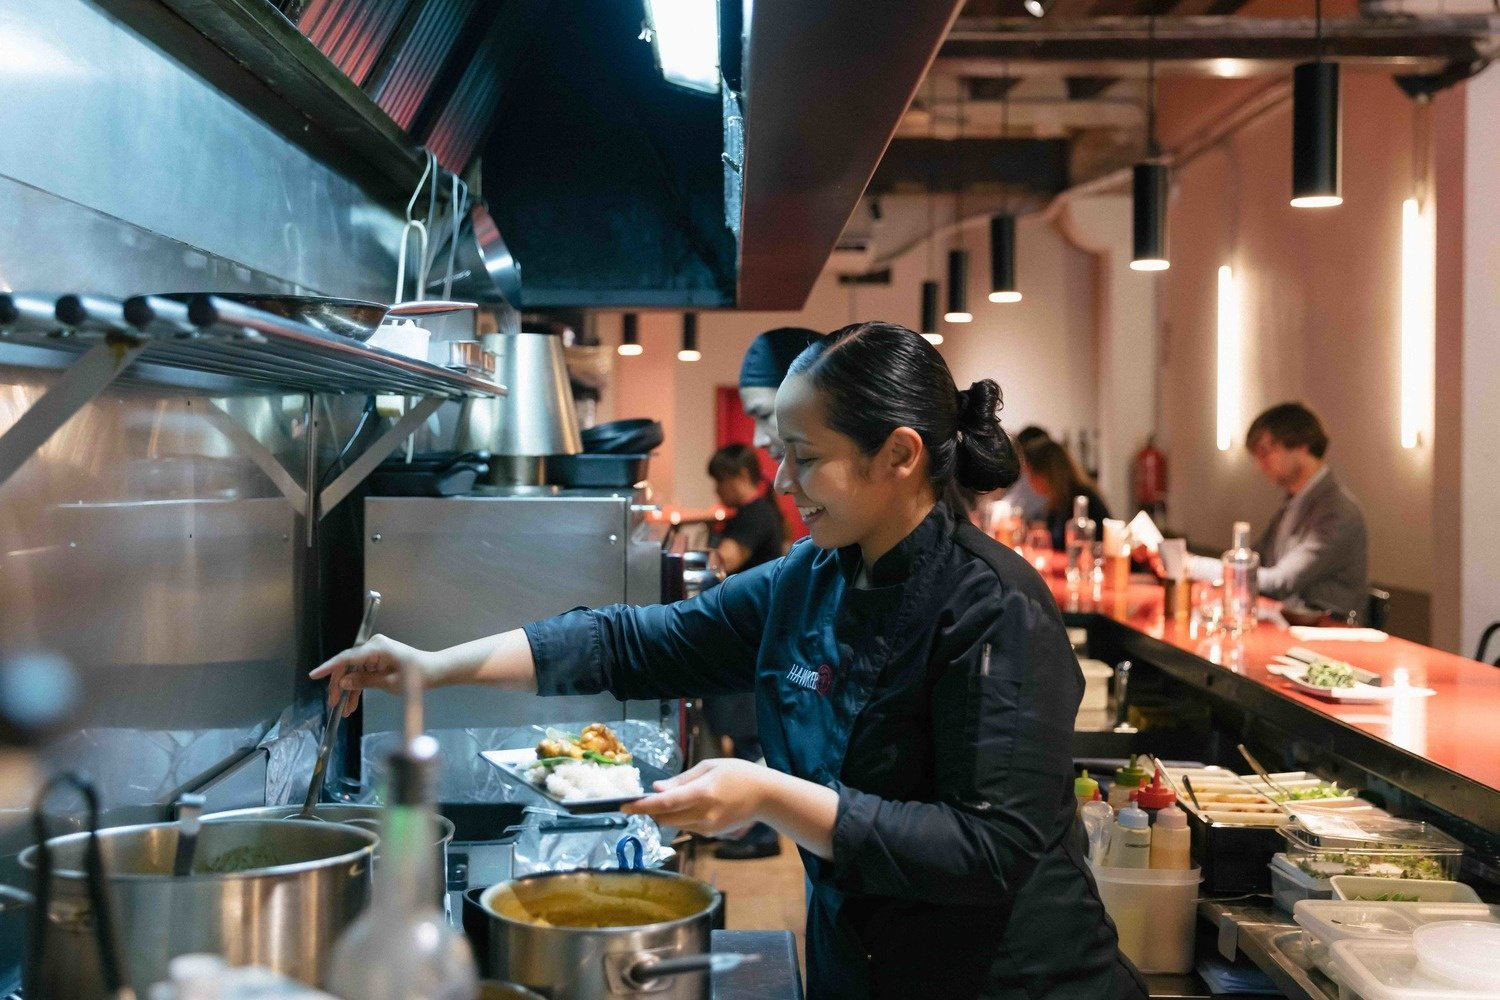 Cooking Up a Storm in the Catalan capital: An Expat's Story